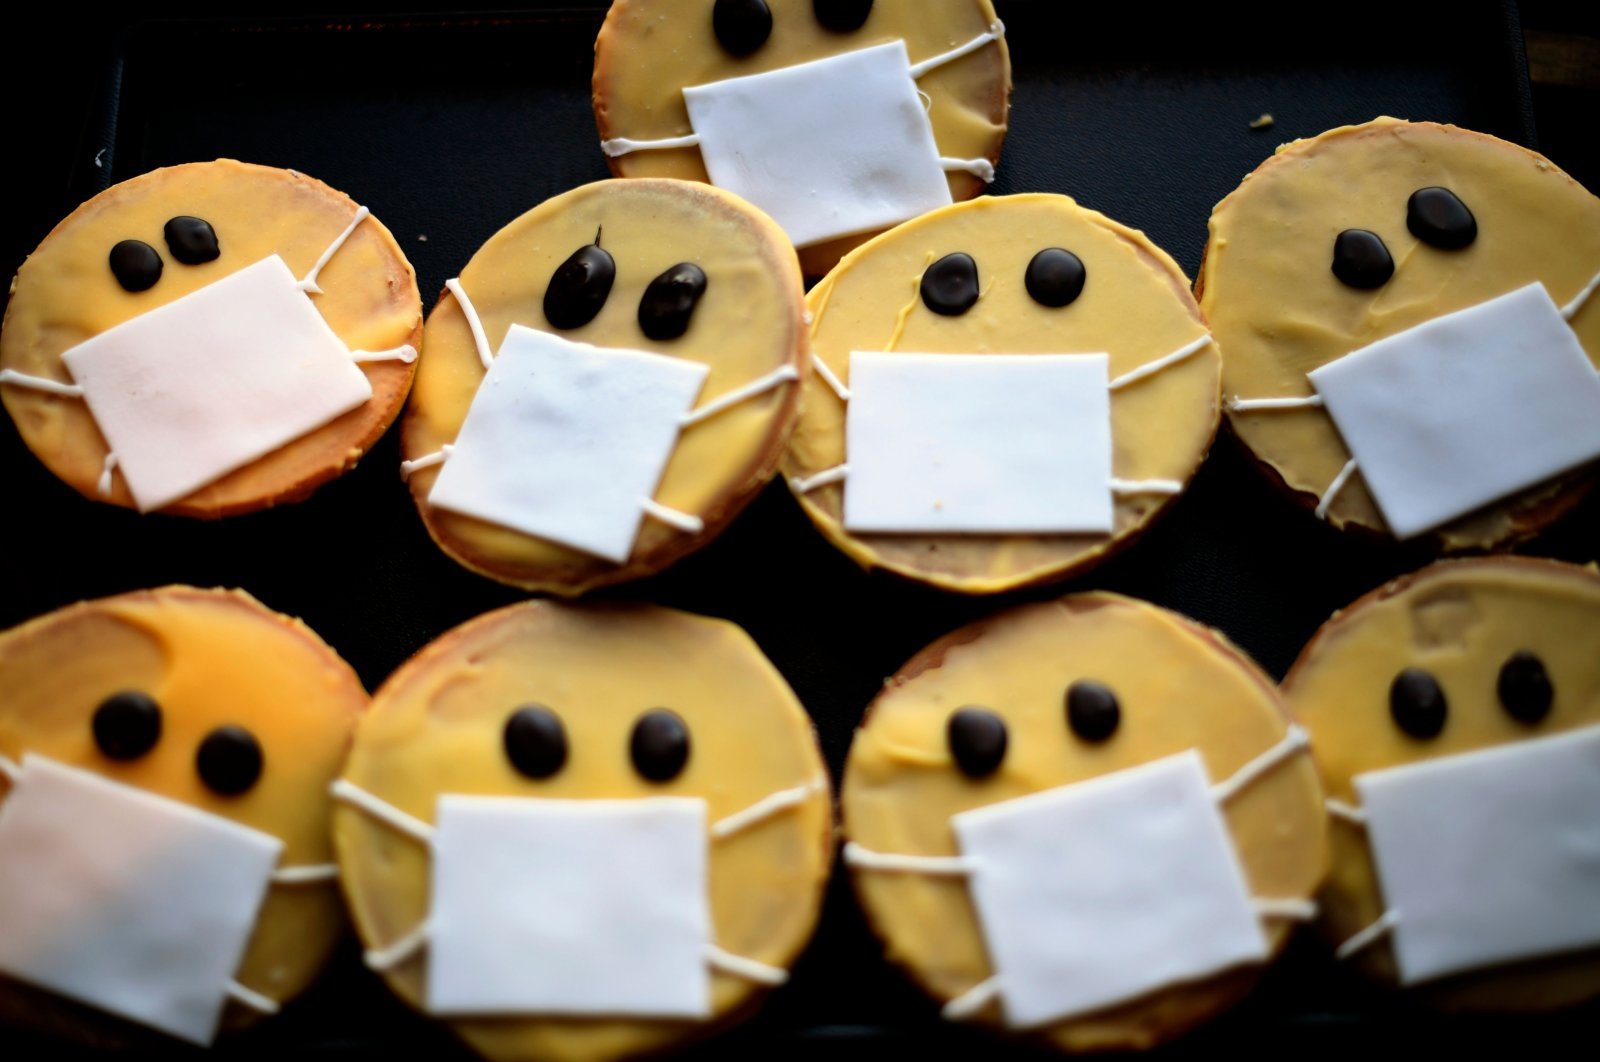 Biscuits featuring a face with a face mask are displayed at the bakery Schuerener Backparadies in Dortmund, German, Thursday, March 26, 2020. (AFP Photo)